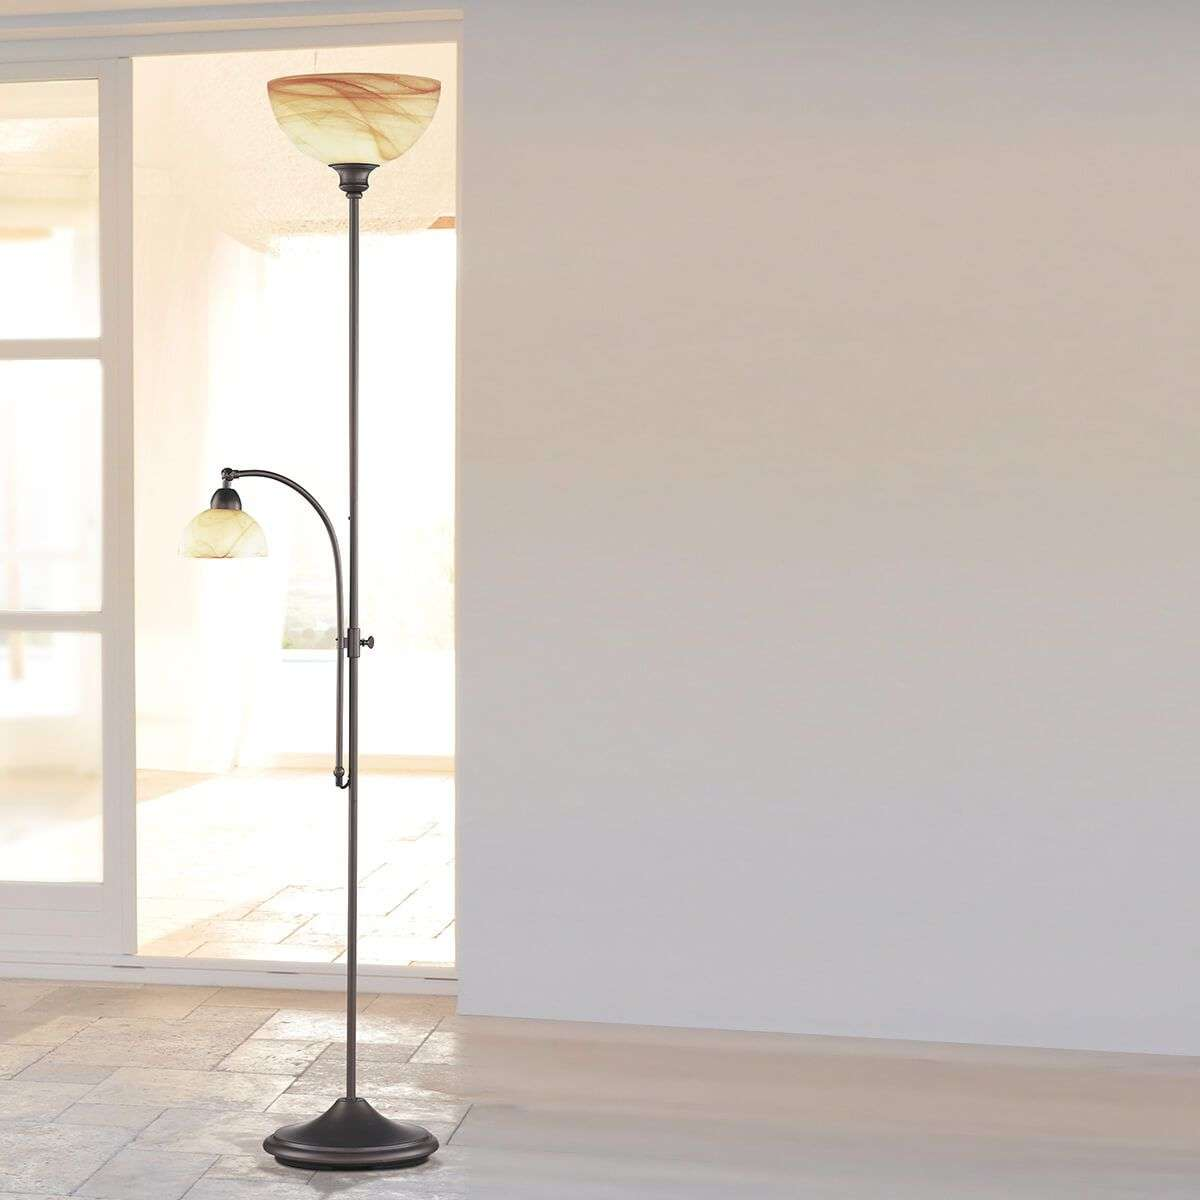 Lacchino floor lamp with foot dimmer-9650219-31